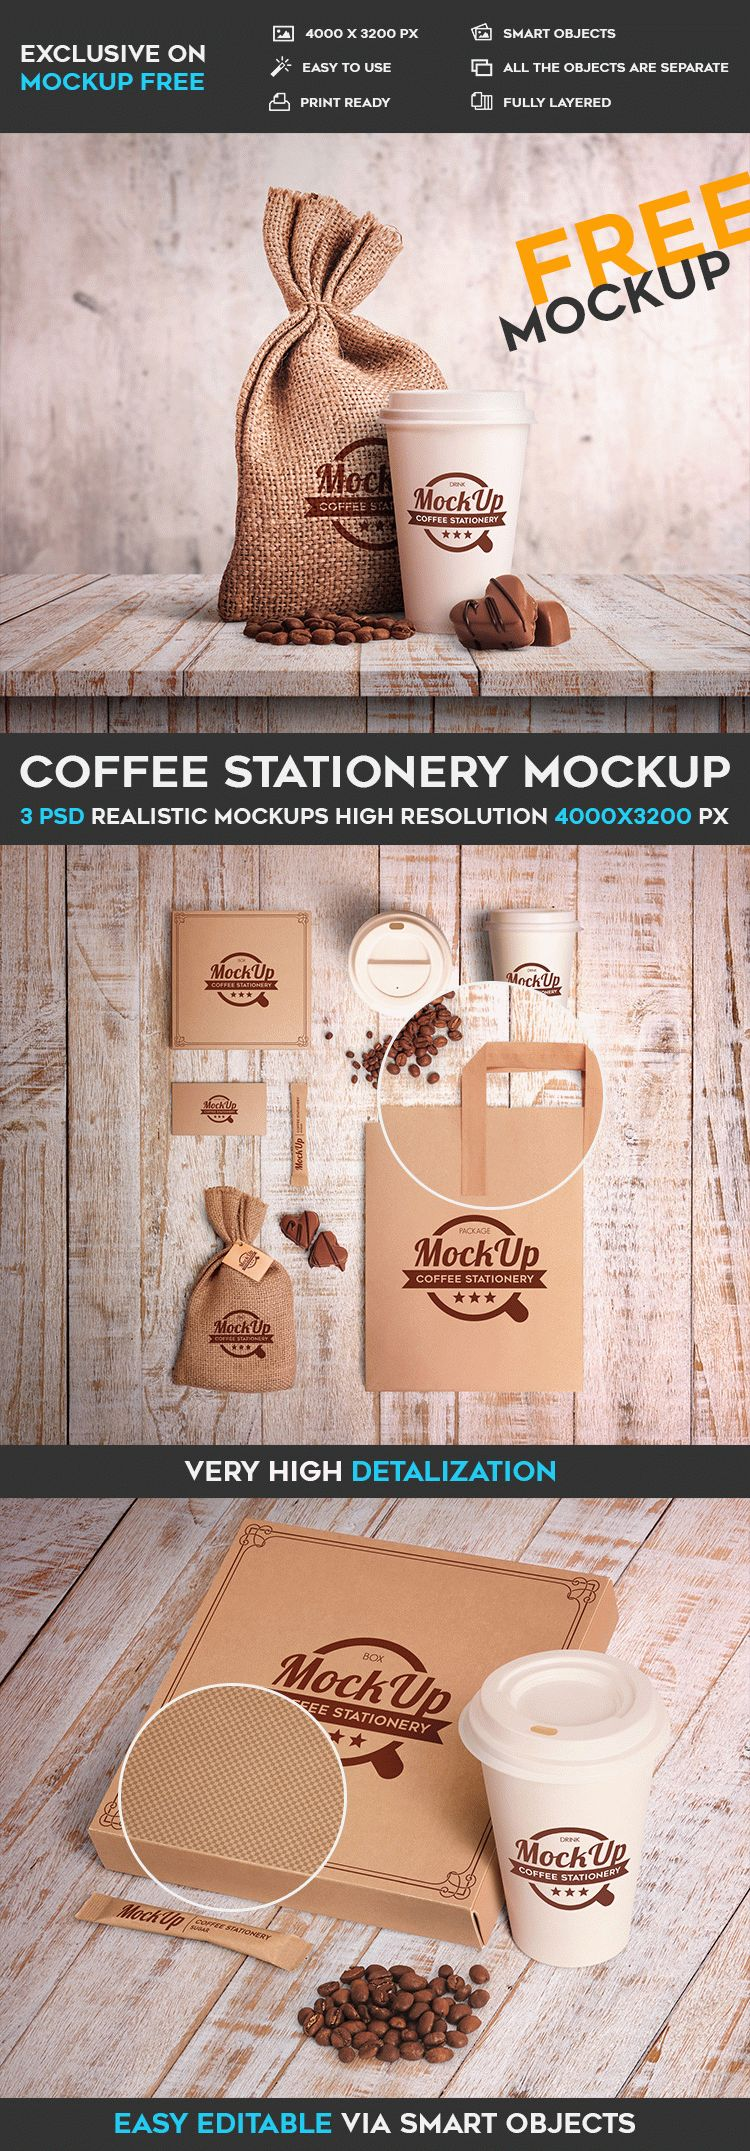 bigpreview_coffee-stationery